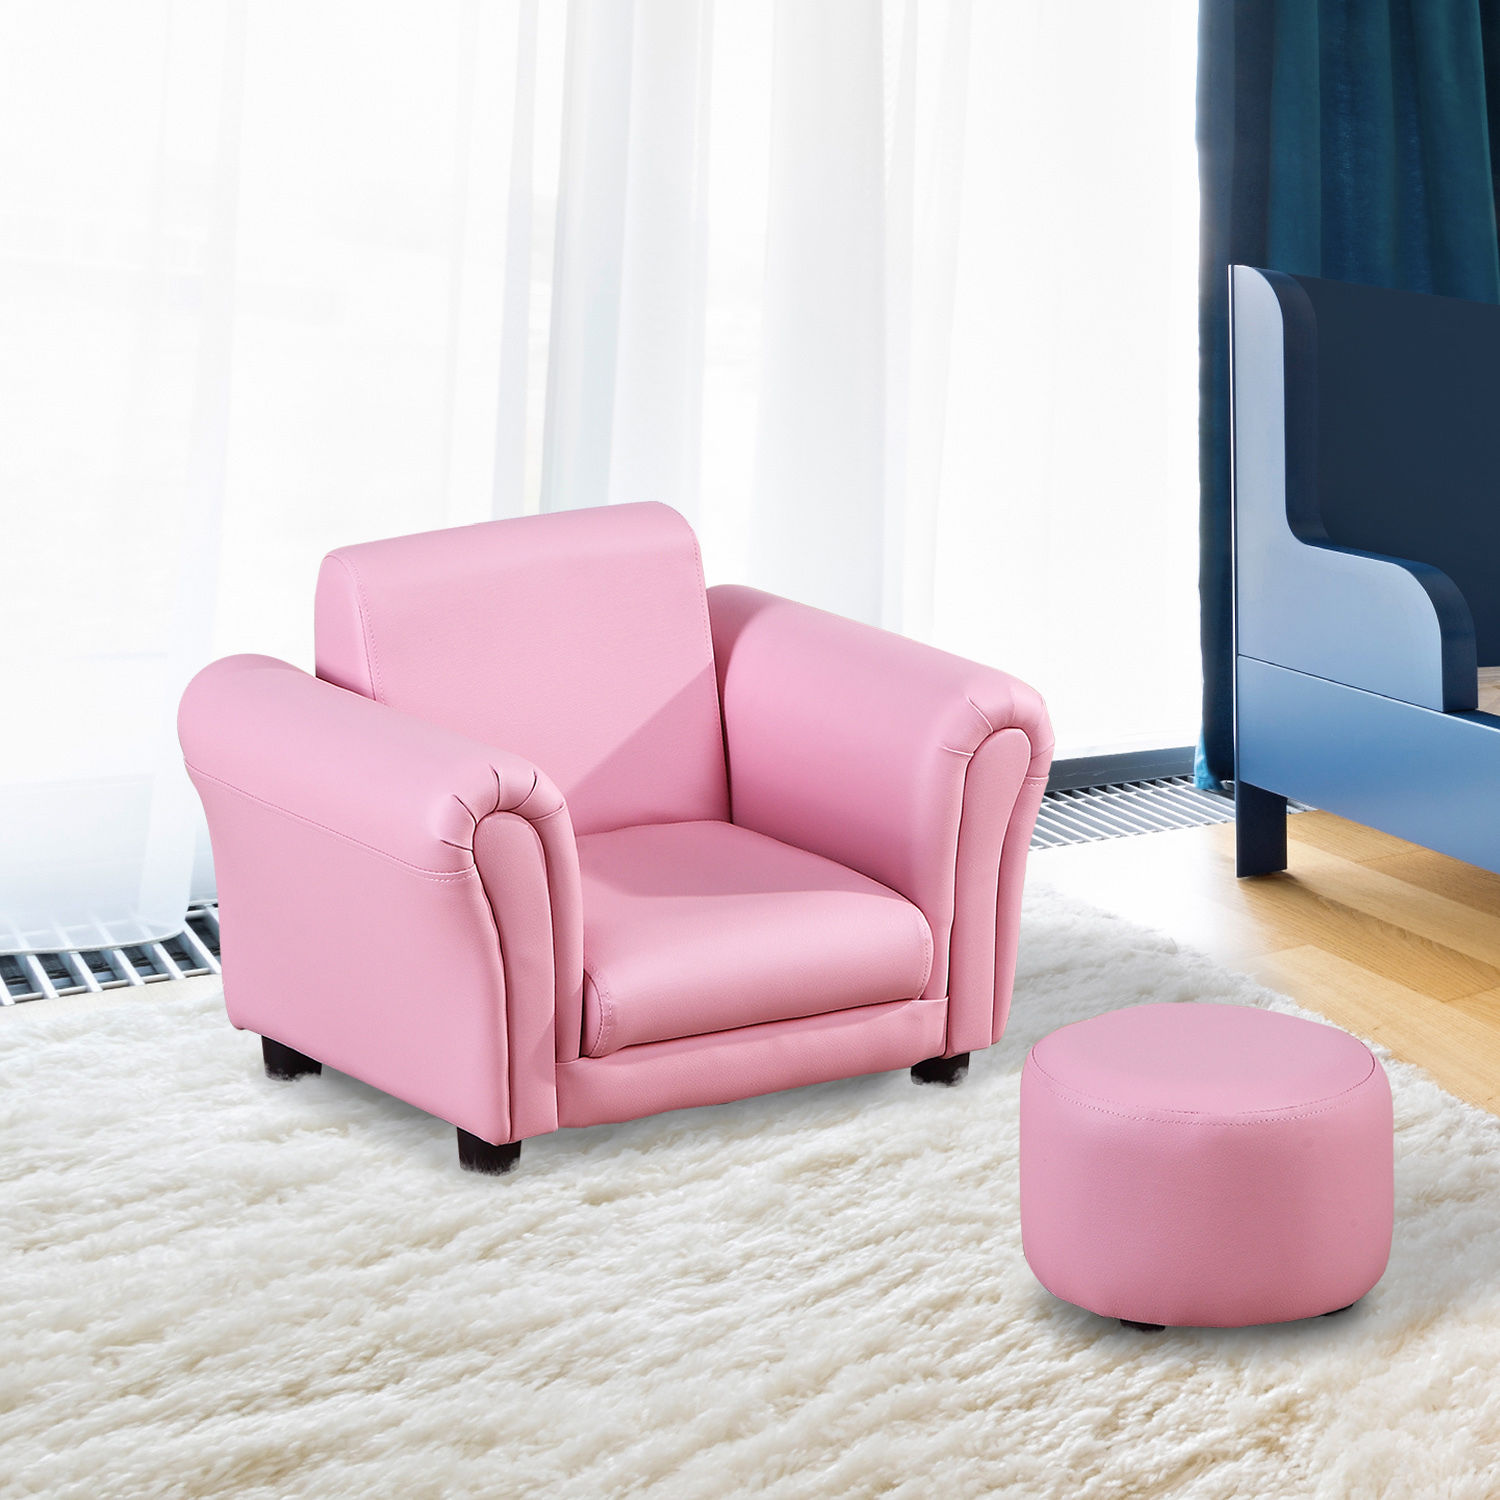 HOMCOM Children's PVC Single Seater Armchair with Footstool Pink